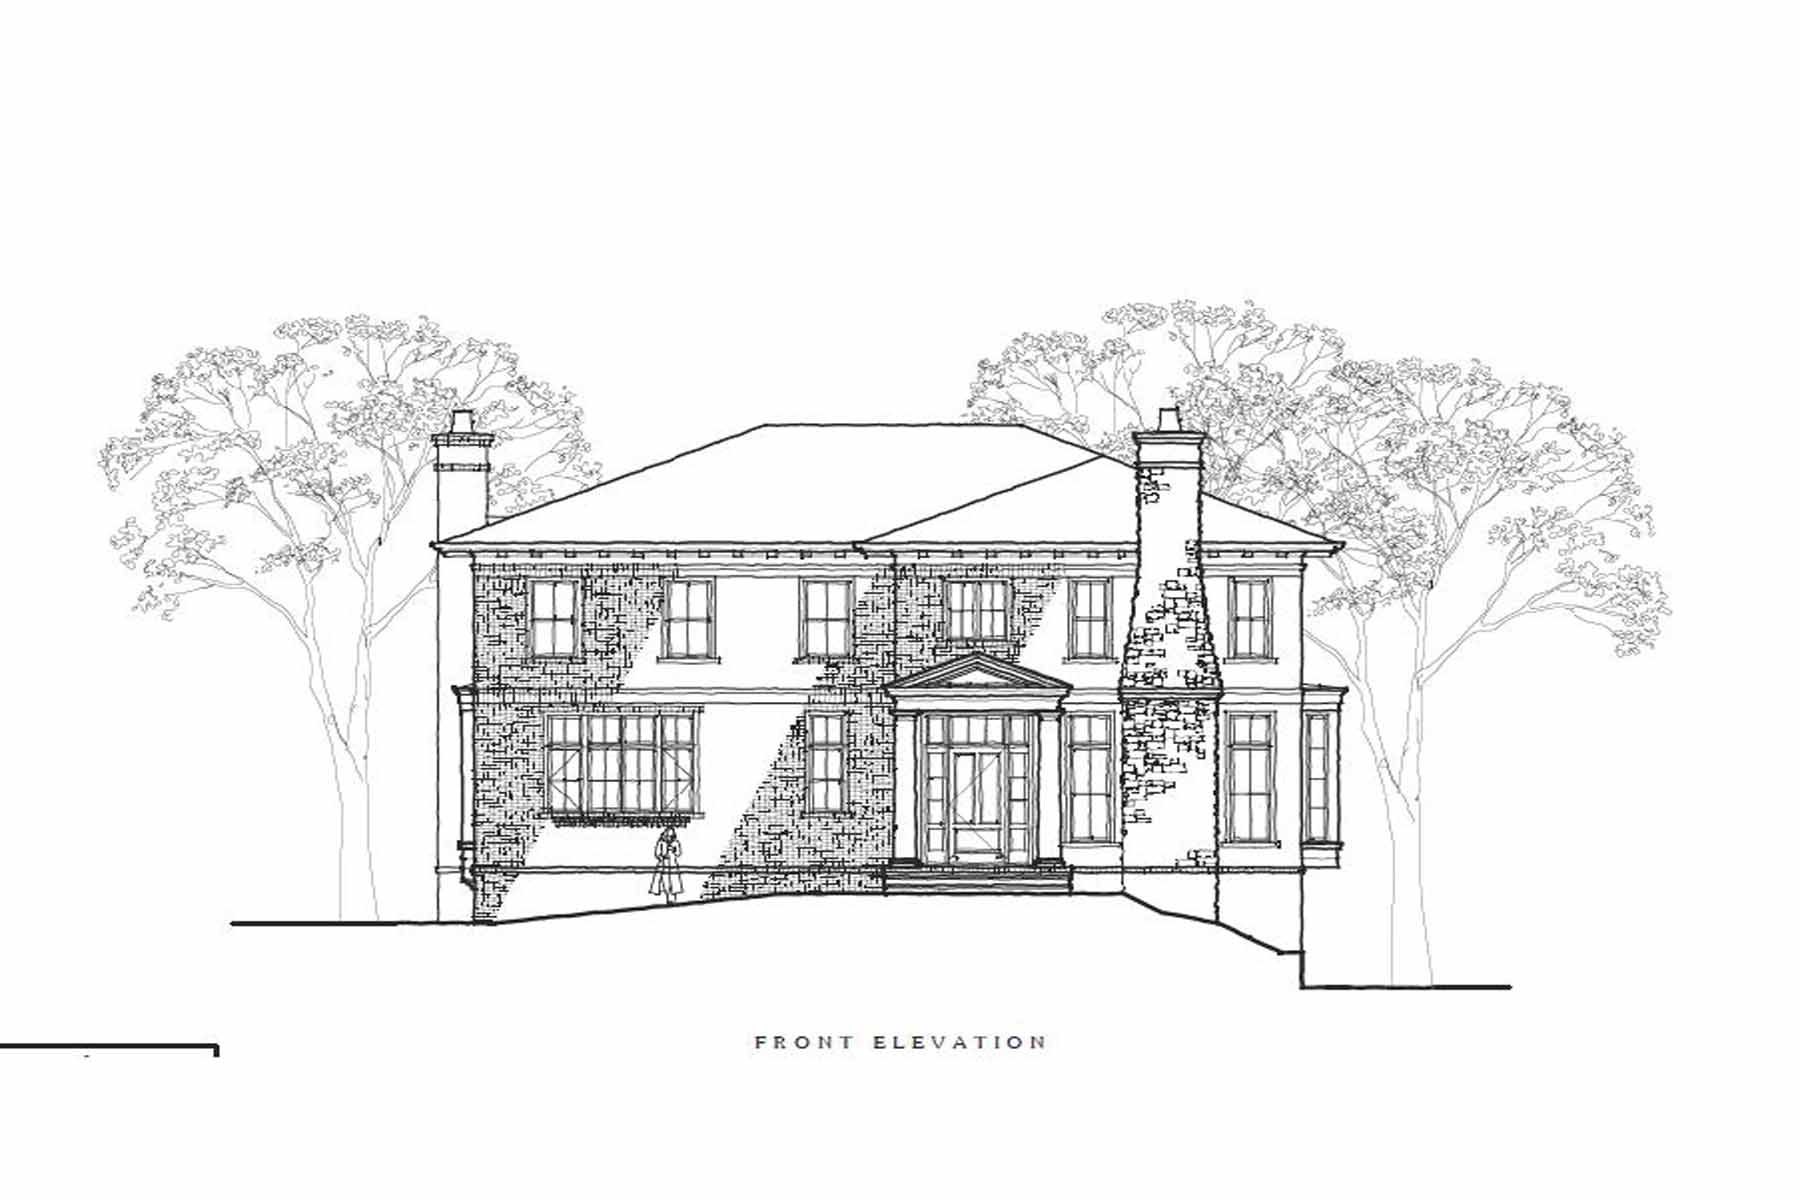 Single Family Home for Sale at New Construction in Ansley Park 109 17th Street NE Ansley Park, Atlanta, Georgia, 30309 United States